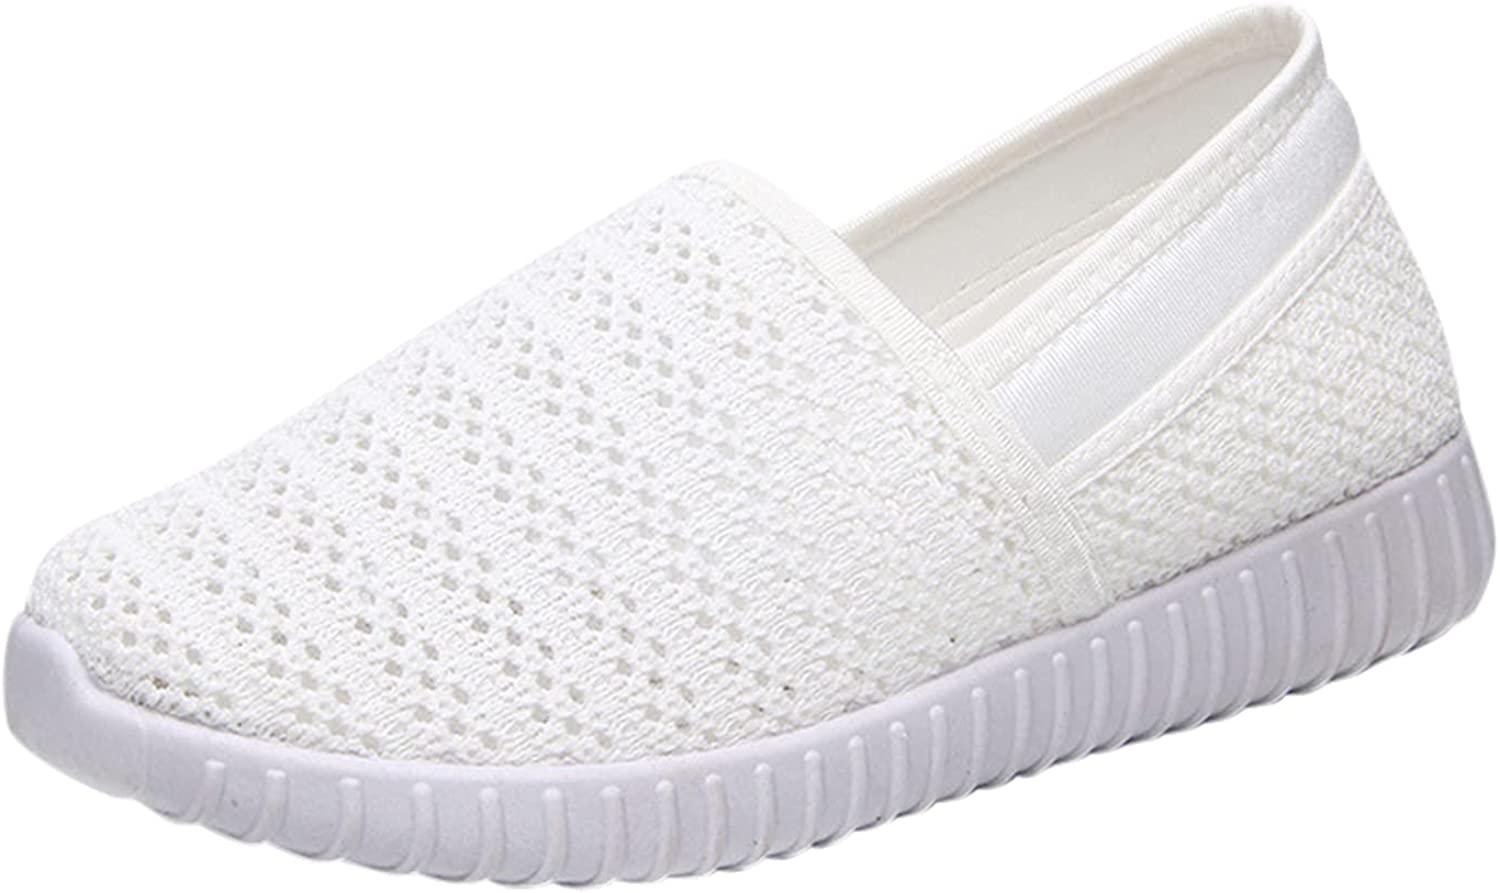 Gyouanime Bombing new work Sneakers 100% quality warranty! Summer Casual Breathable mesh Comfortable Sli